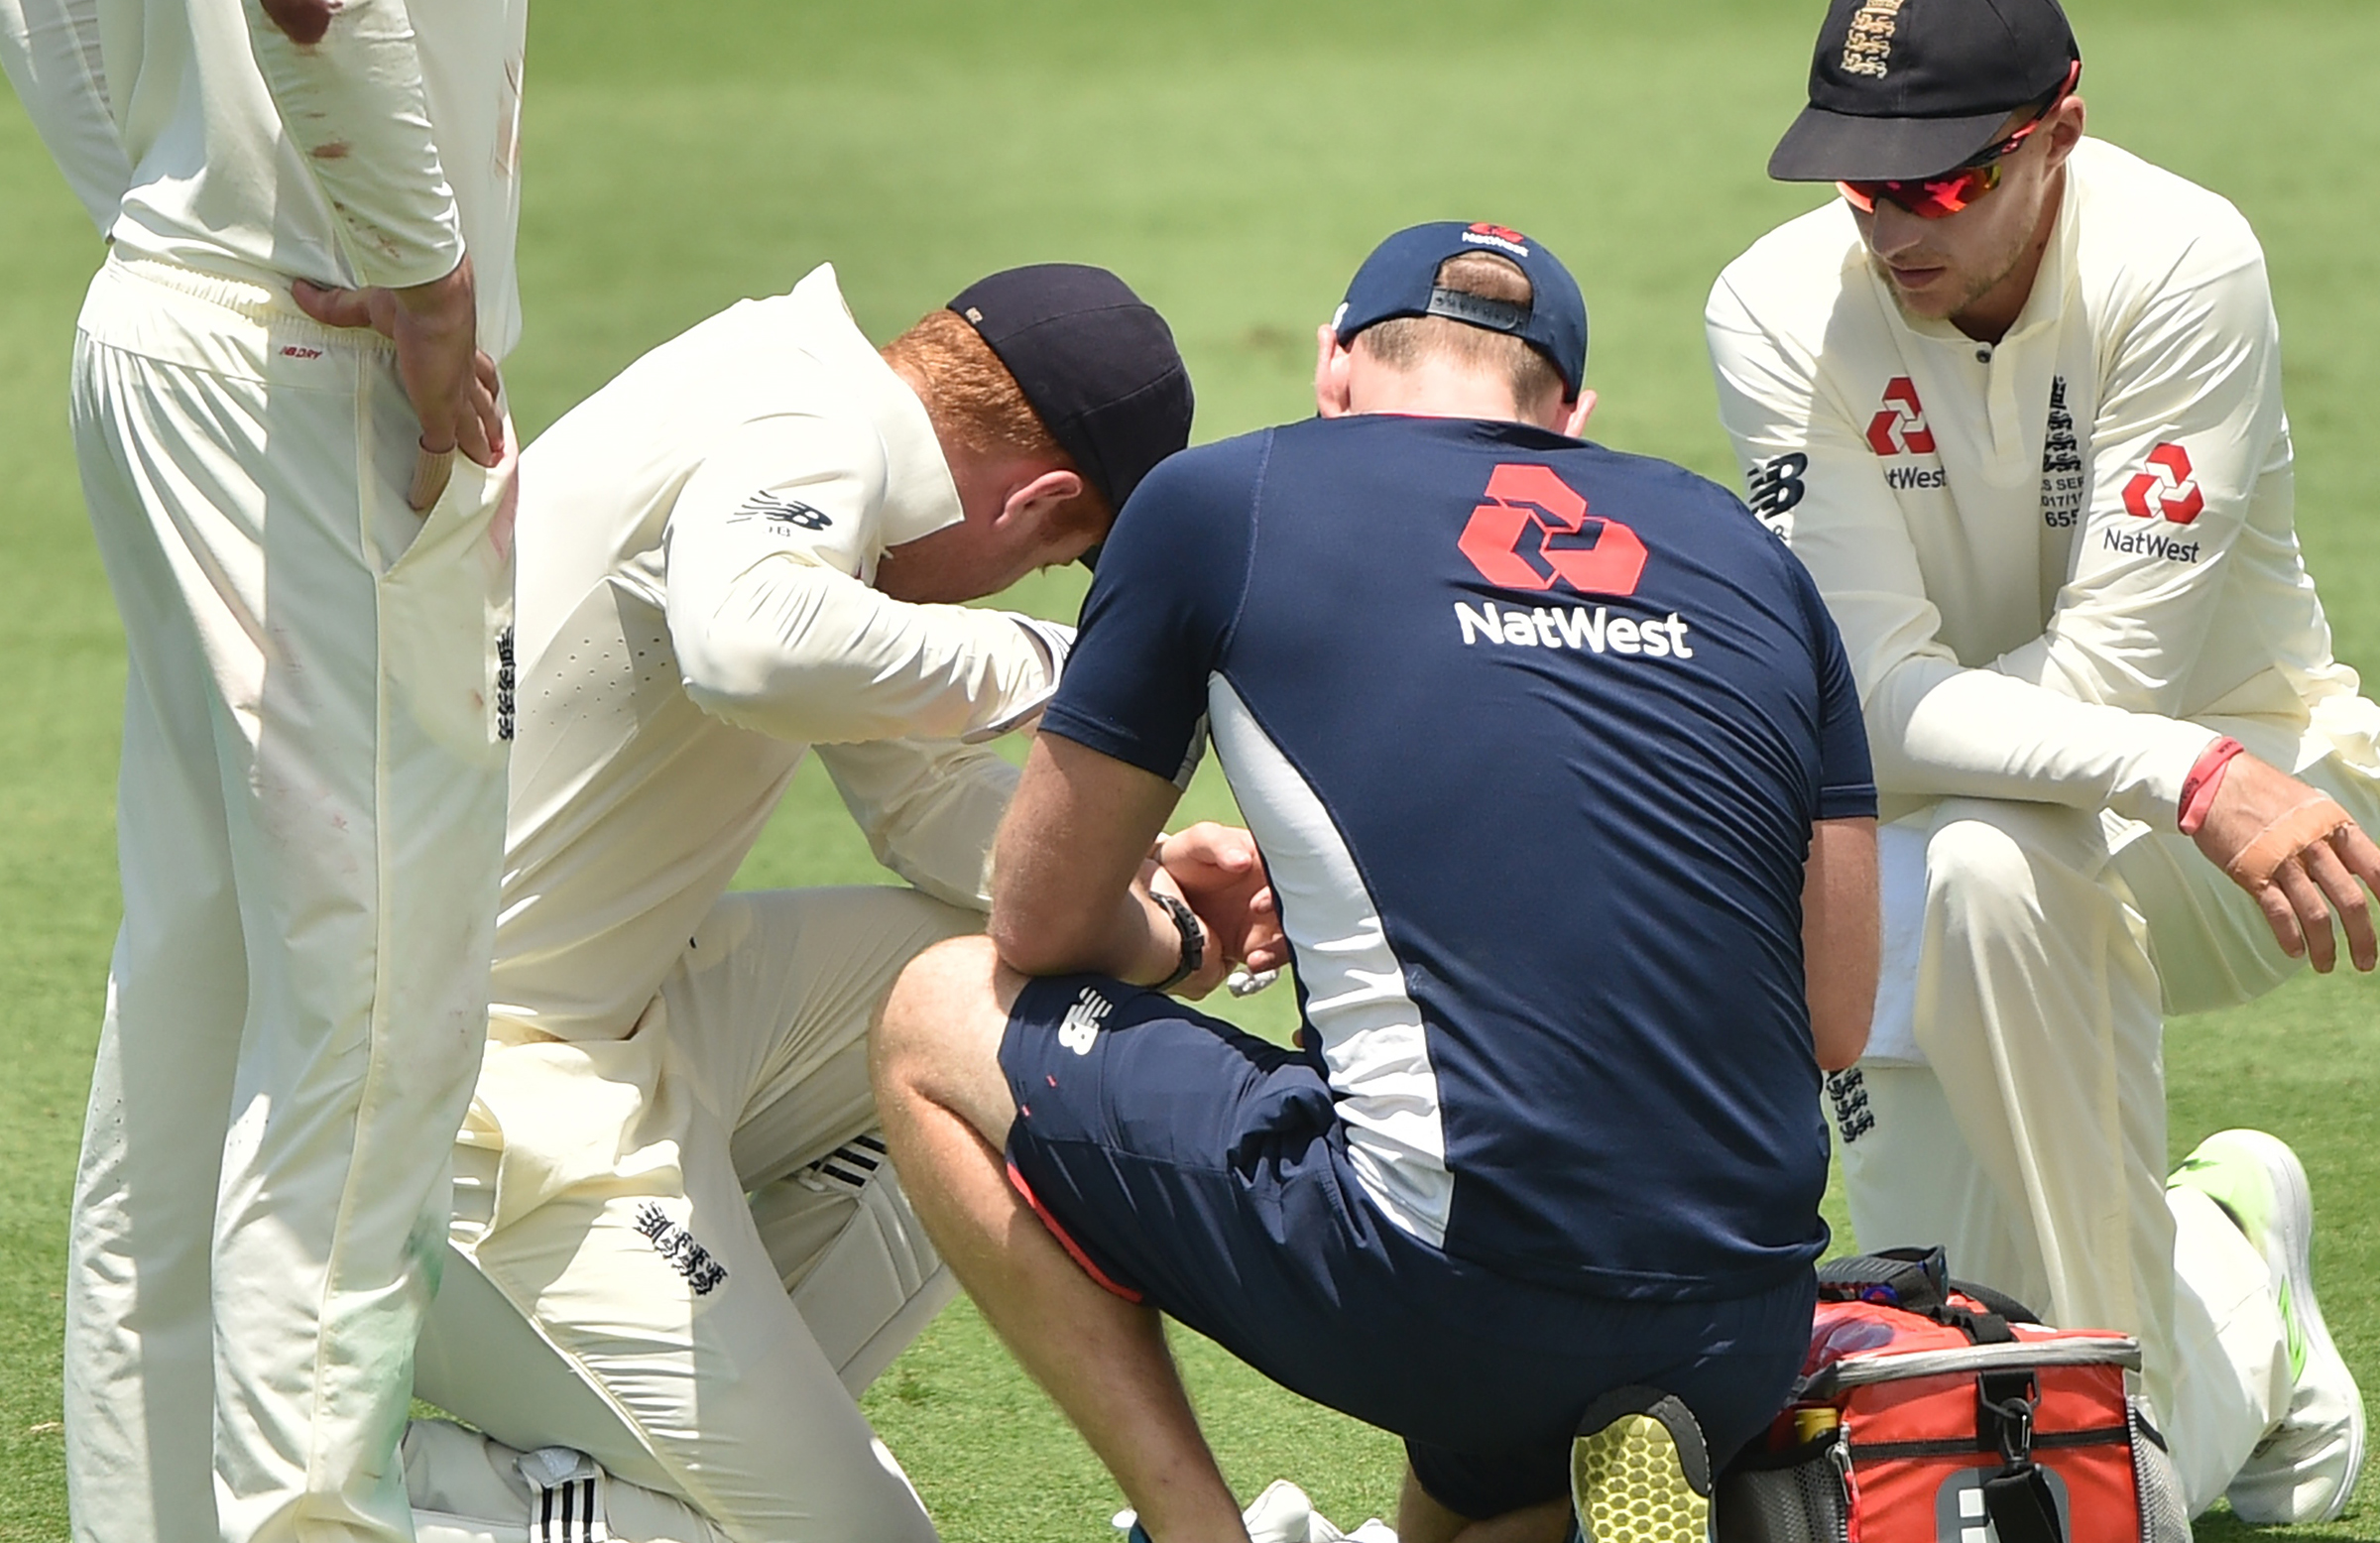 Bairstow receives treatment after the knock // Getty